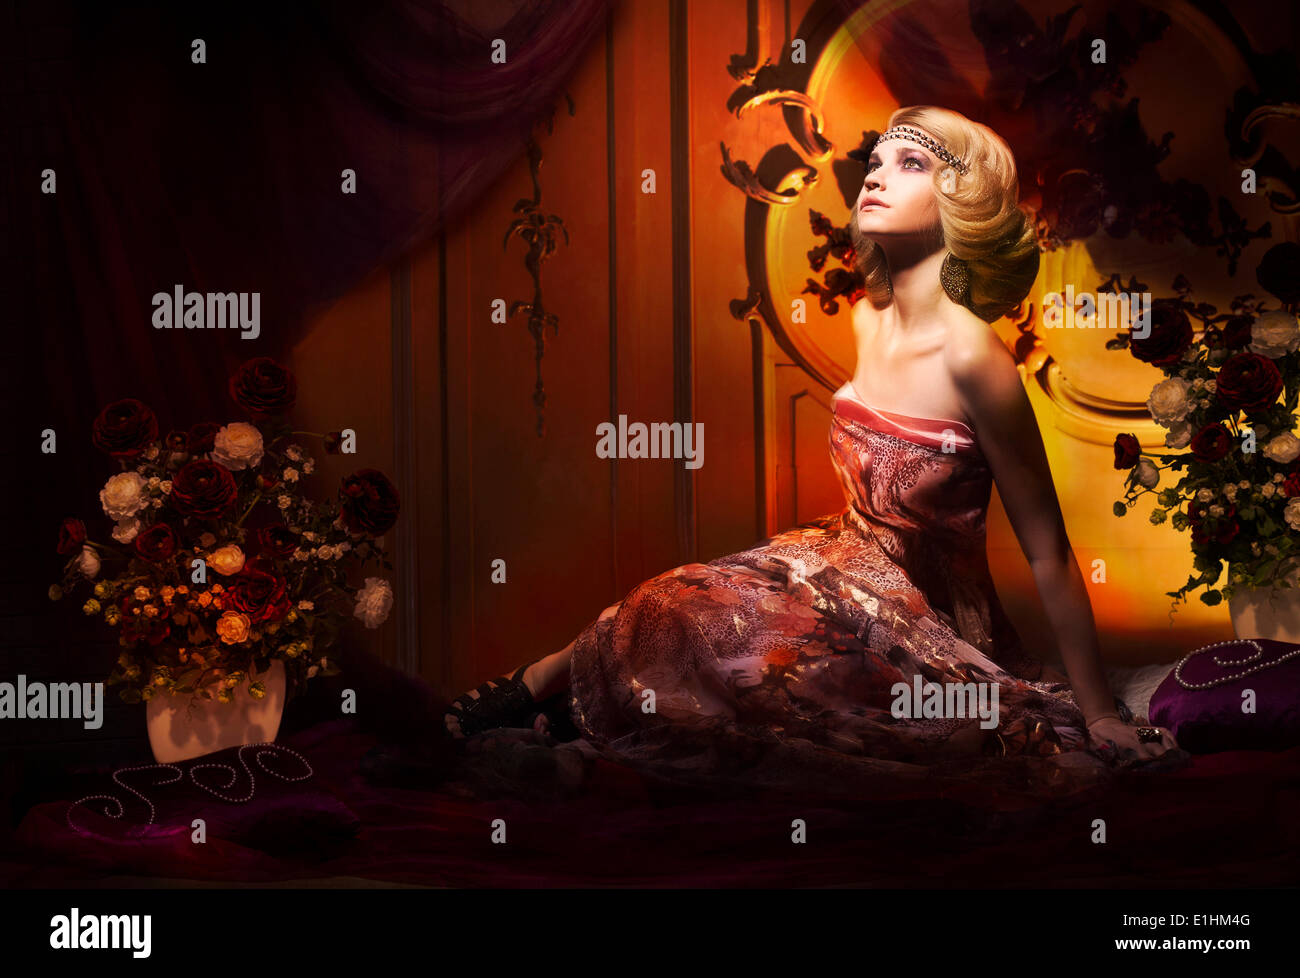 Splendor. Aristocratic Woman in Luxury Vintage Interior Looking Up - Stock Image